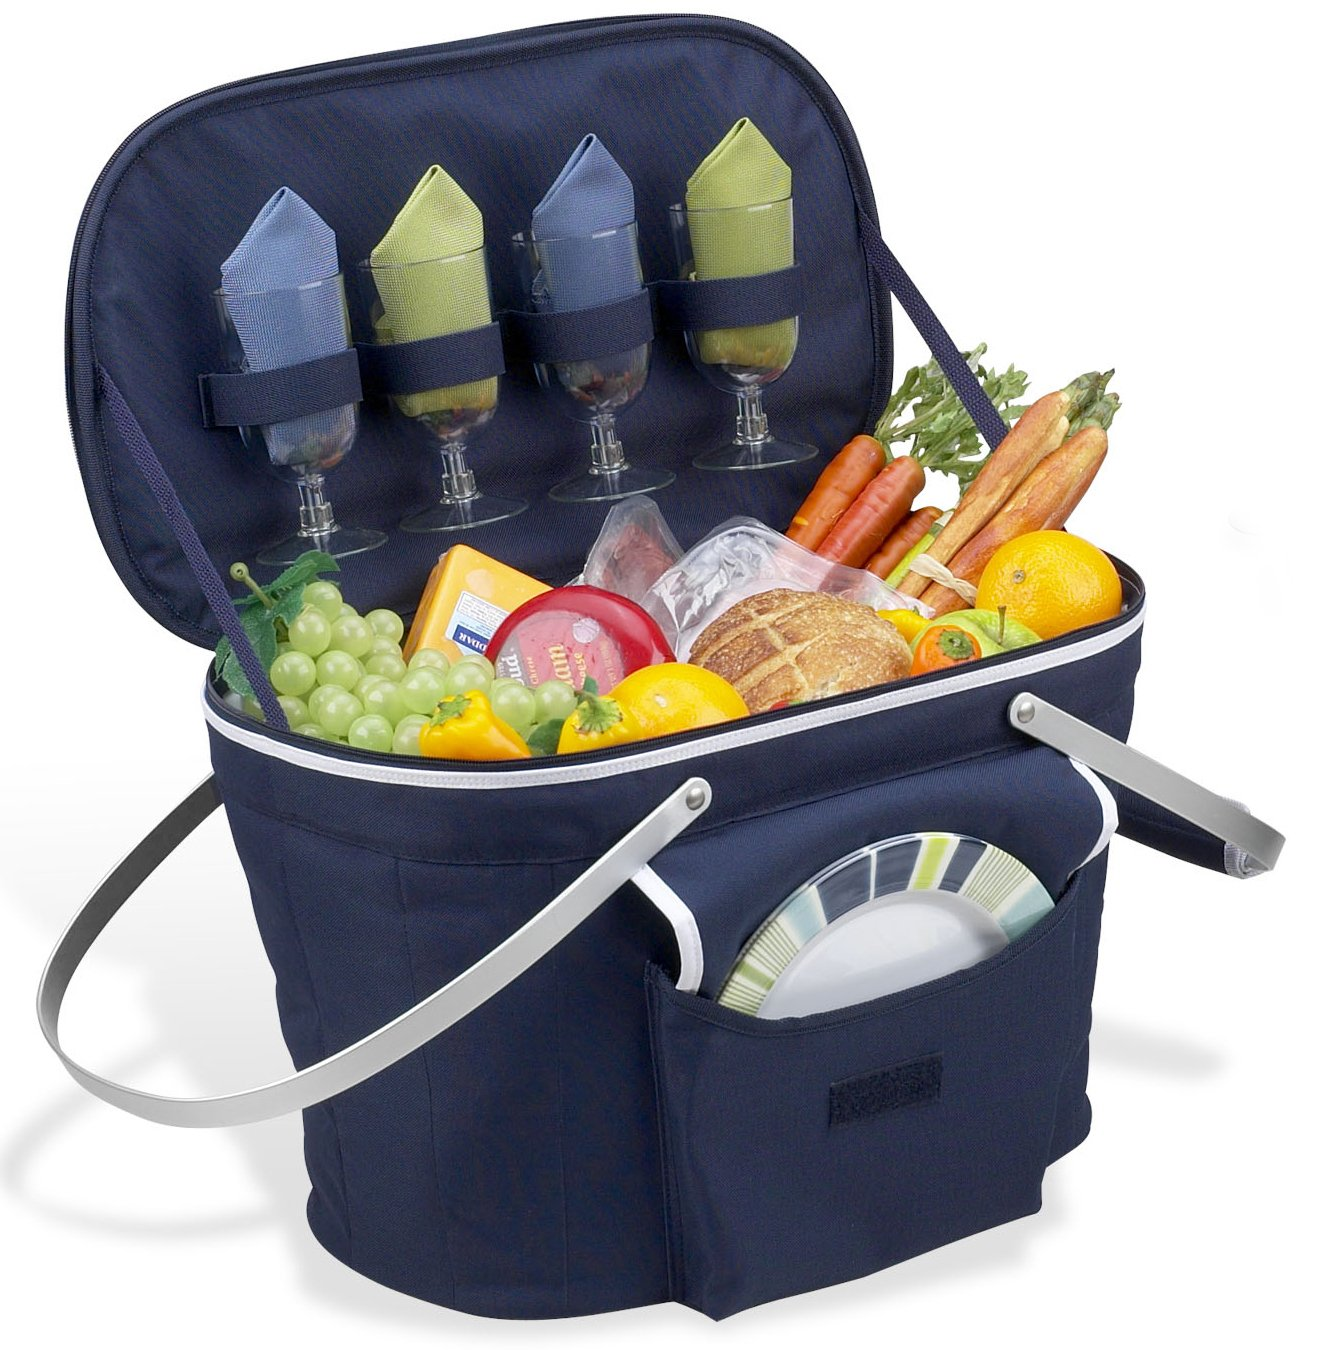 Picnic At Ascot Collapsible Insulated Picnic Basket For 4 : Picnic at ascot collapsible insulated basket for